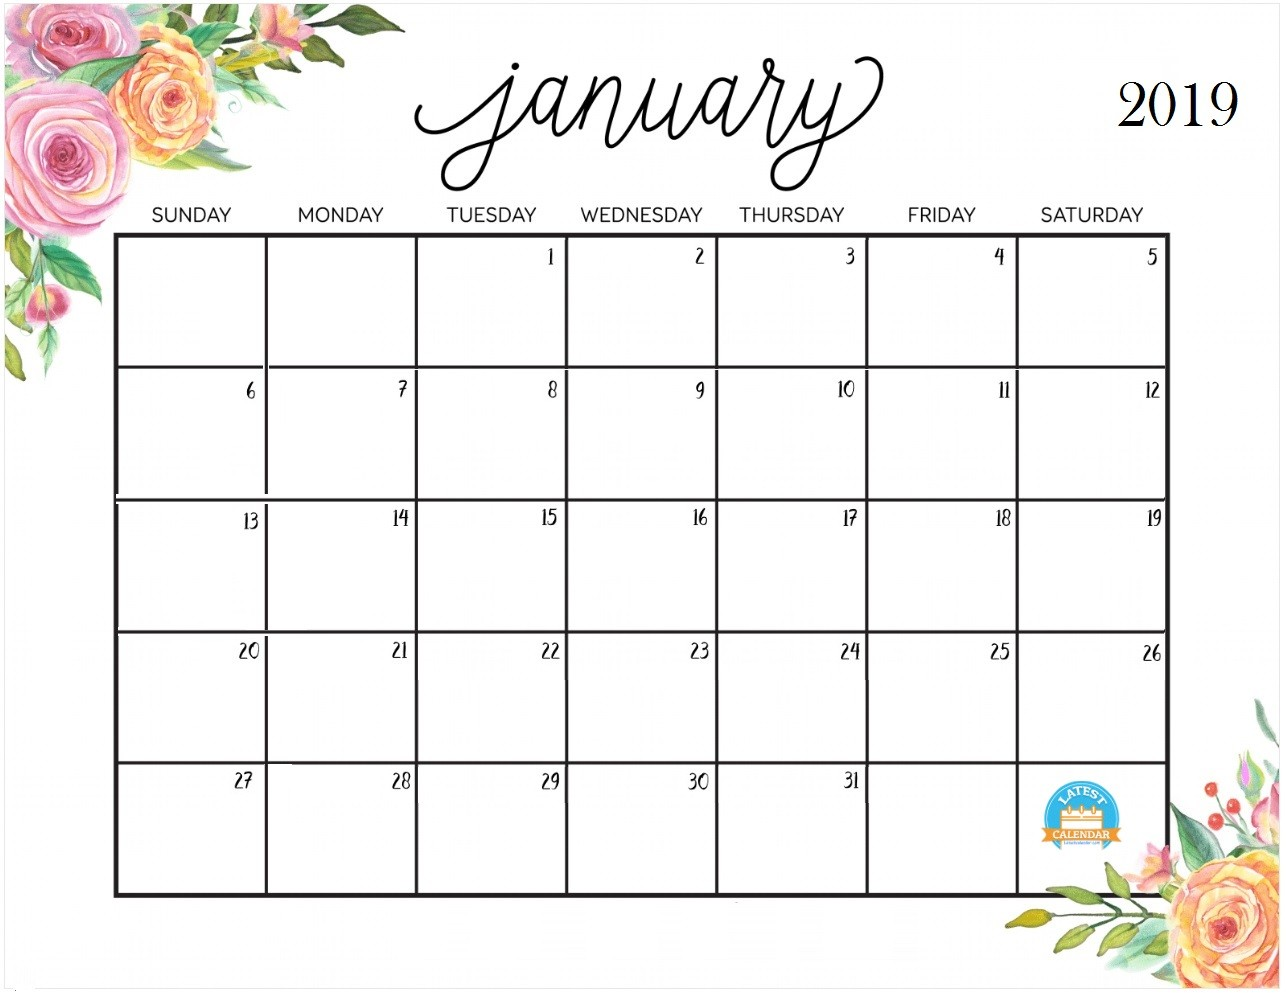 January 2019 Calendar Flower Images